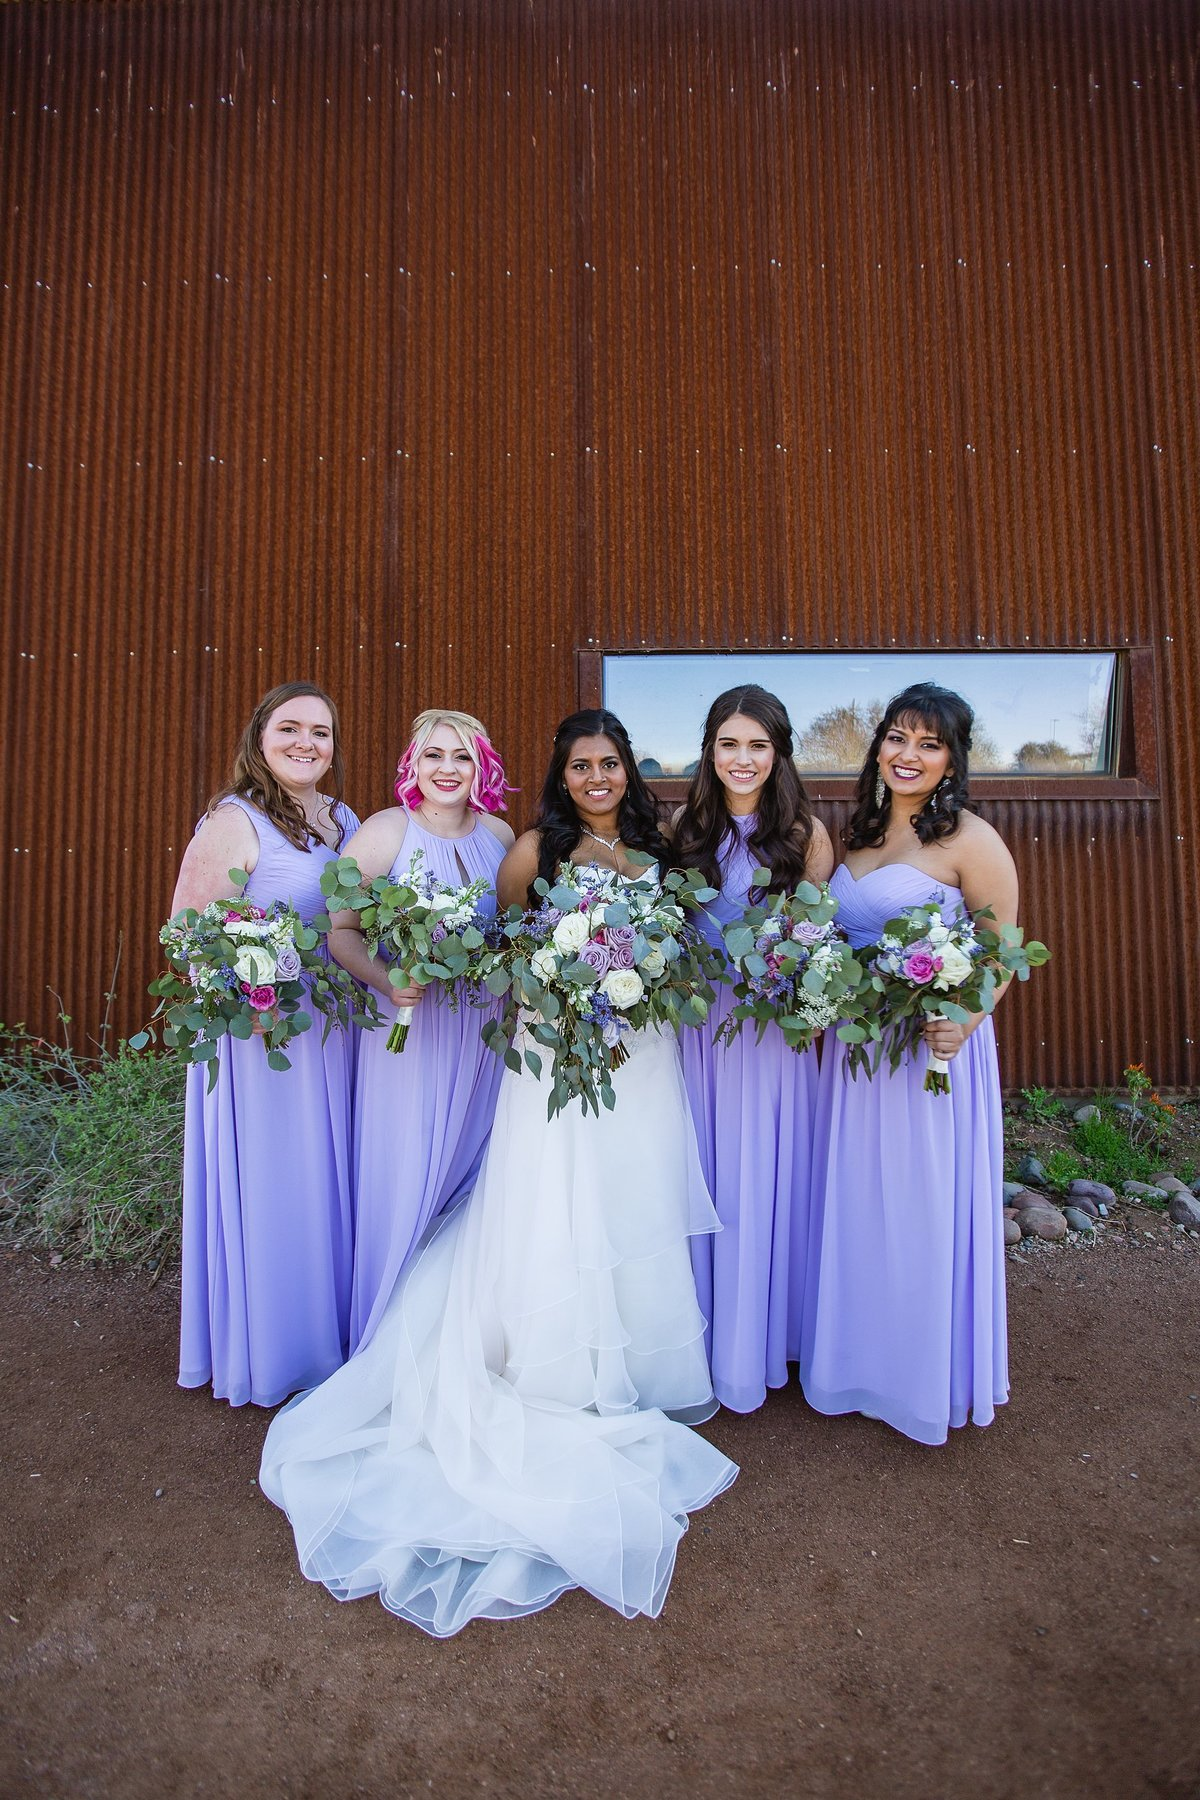 Bride with bridesmaids by Phoenix wedding photographers PMA Photography.